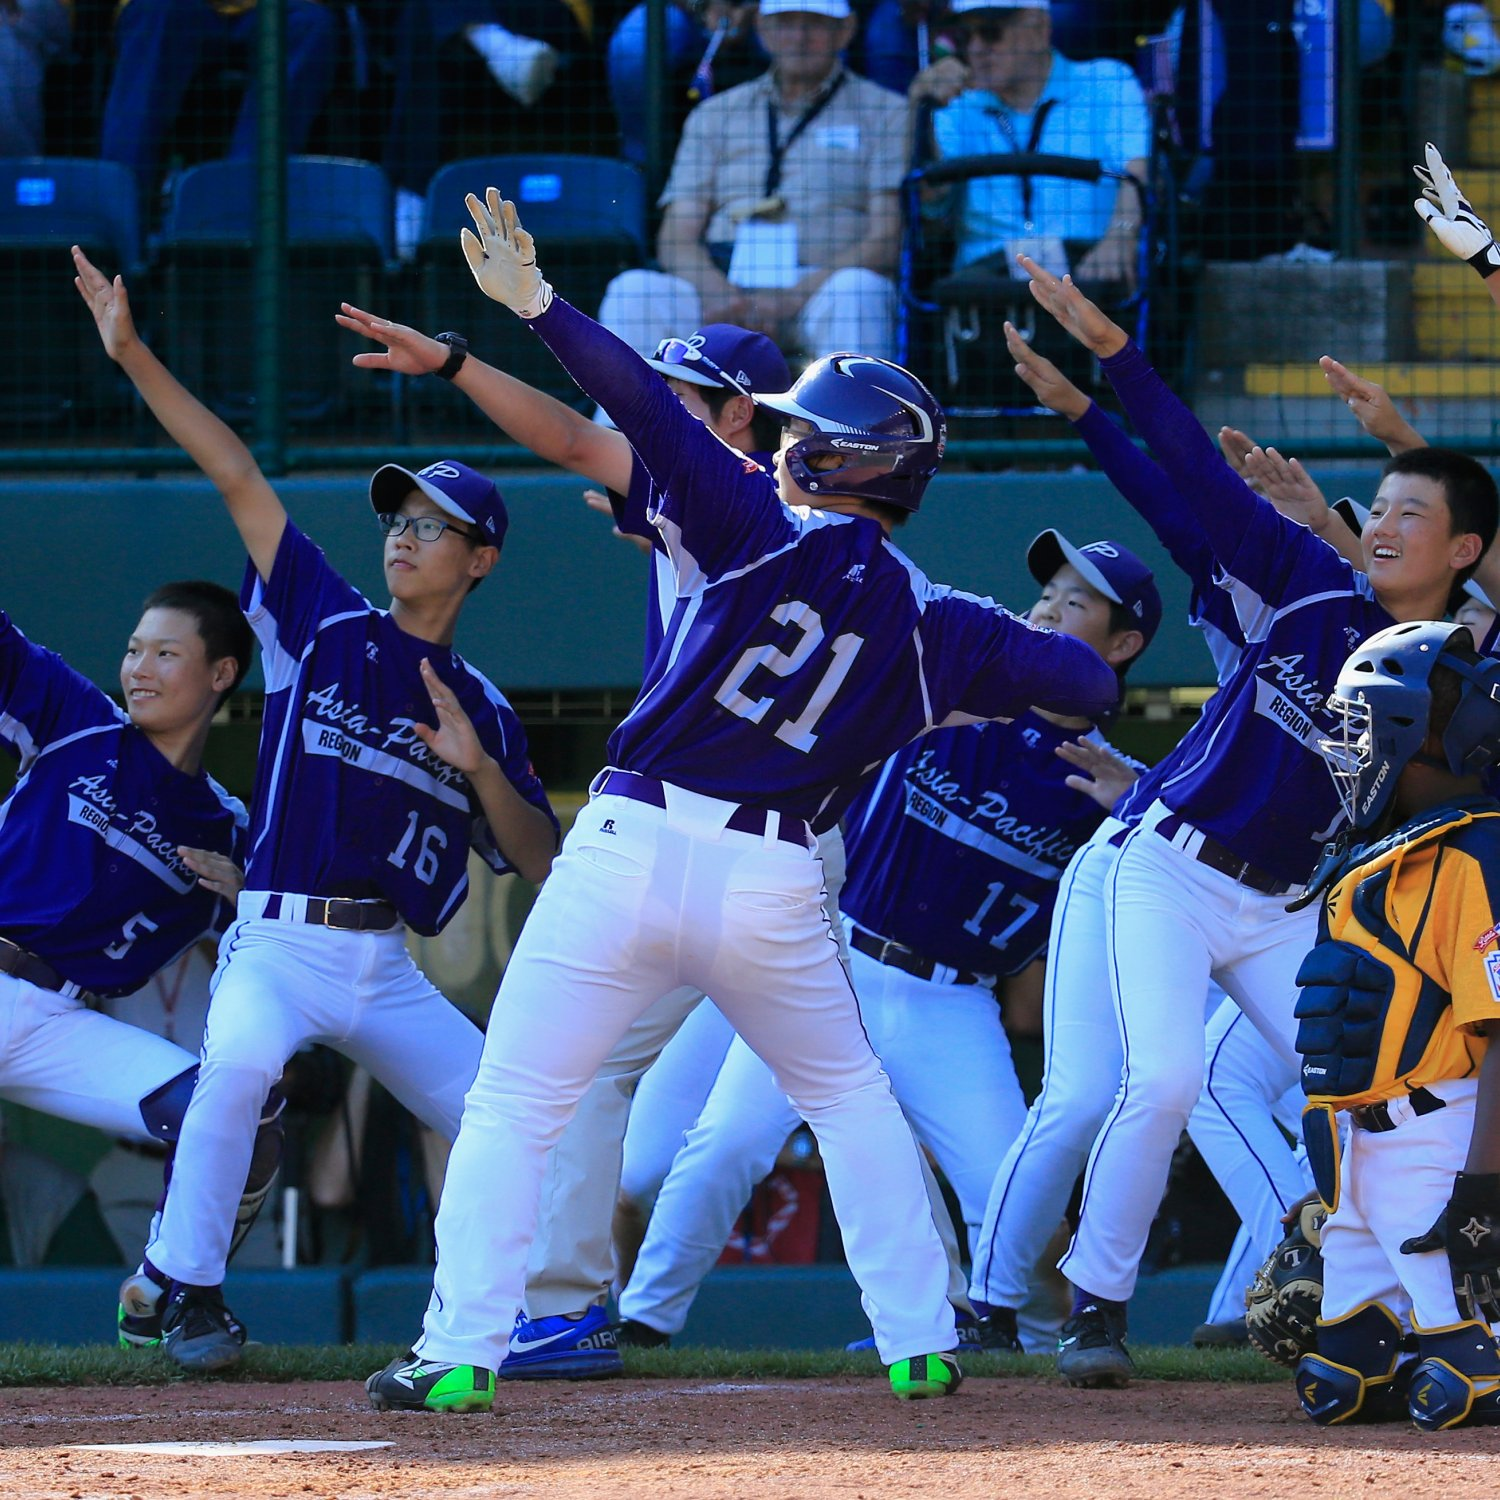 Little League World Series 2014: Twitter Reacts to LLWS Championship Related